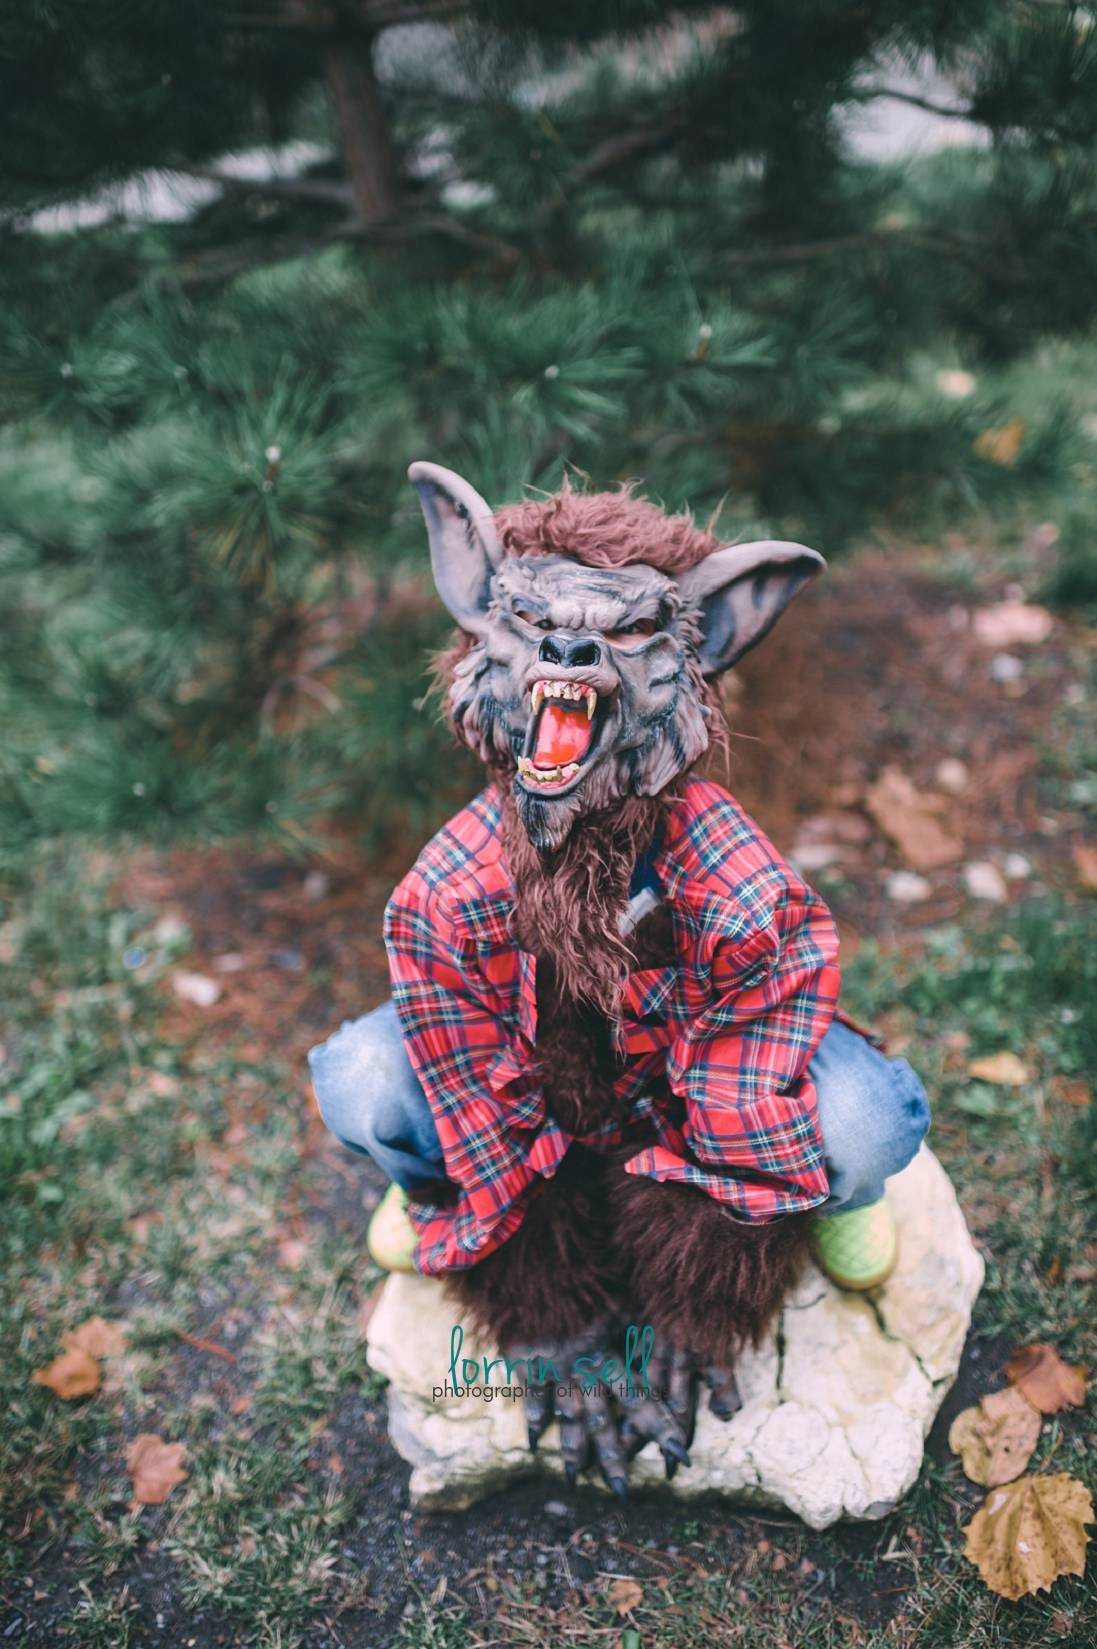 try these tips for taking amazing halloween pictures of your kids